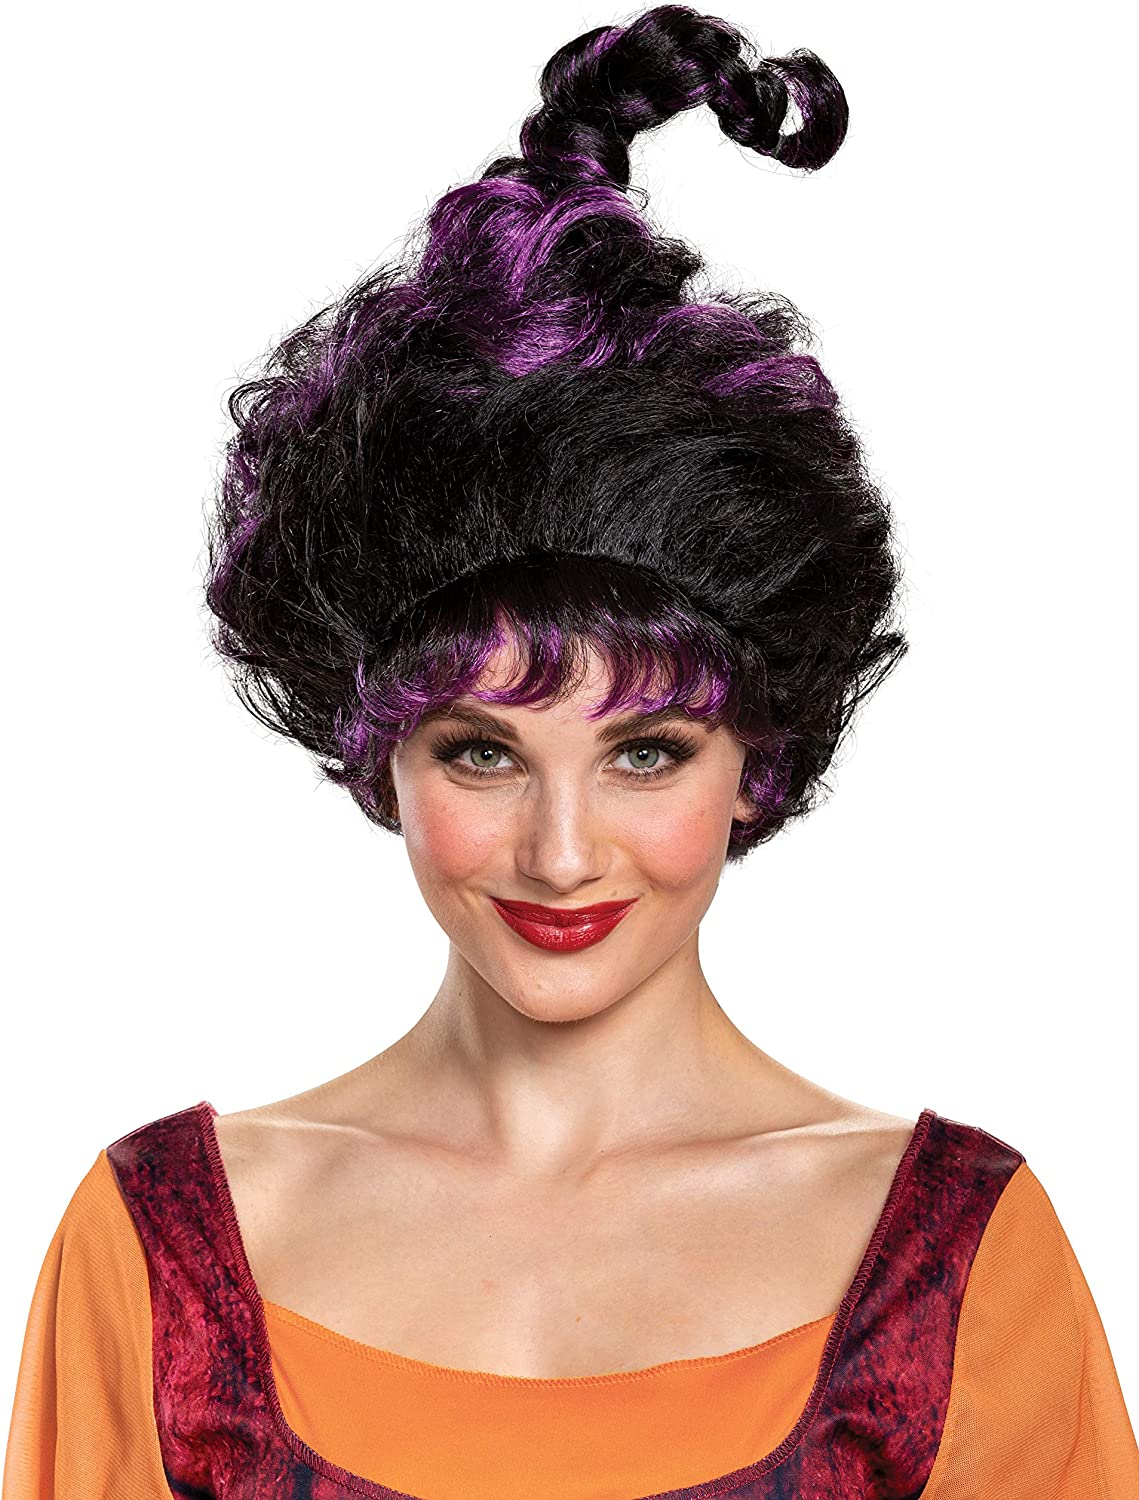 Disguise Hocus Pocus Free Mesa Mall shipping Deluxe Adults Wig for Mary